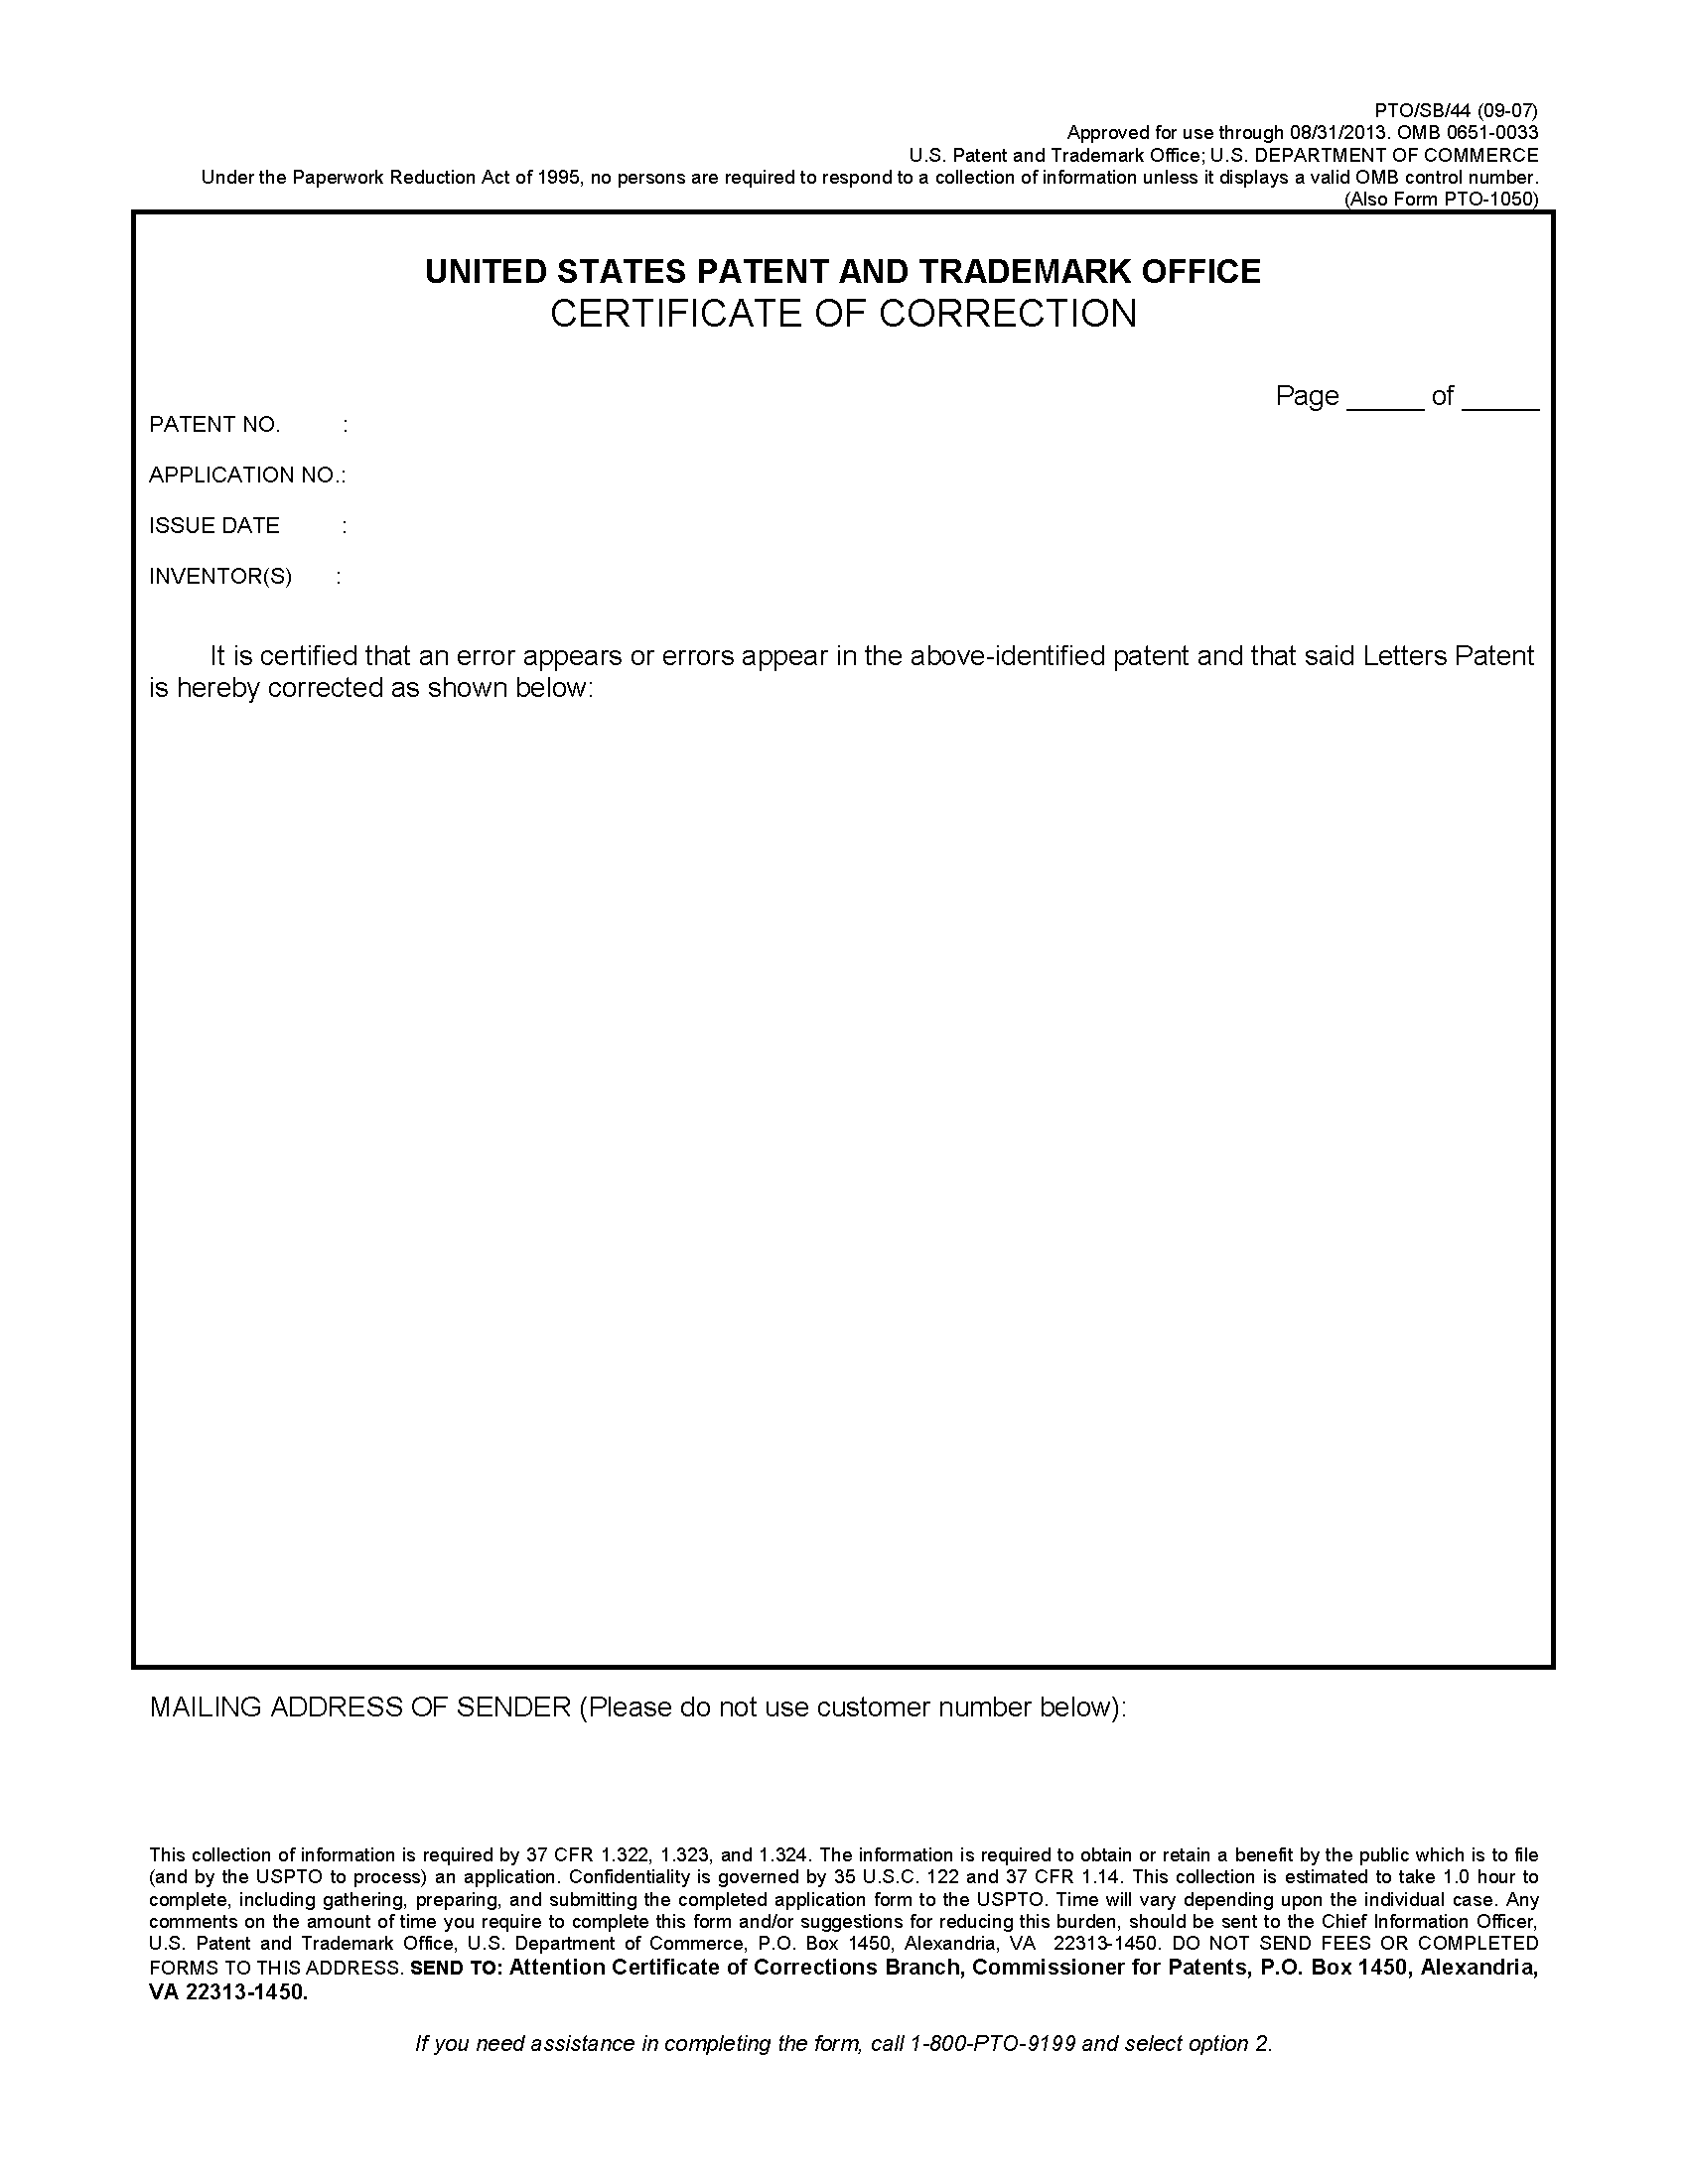 Mpep certificate of correction page 1 yadclub Choice Image